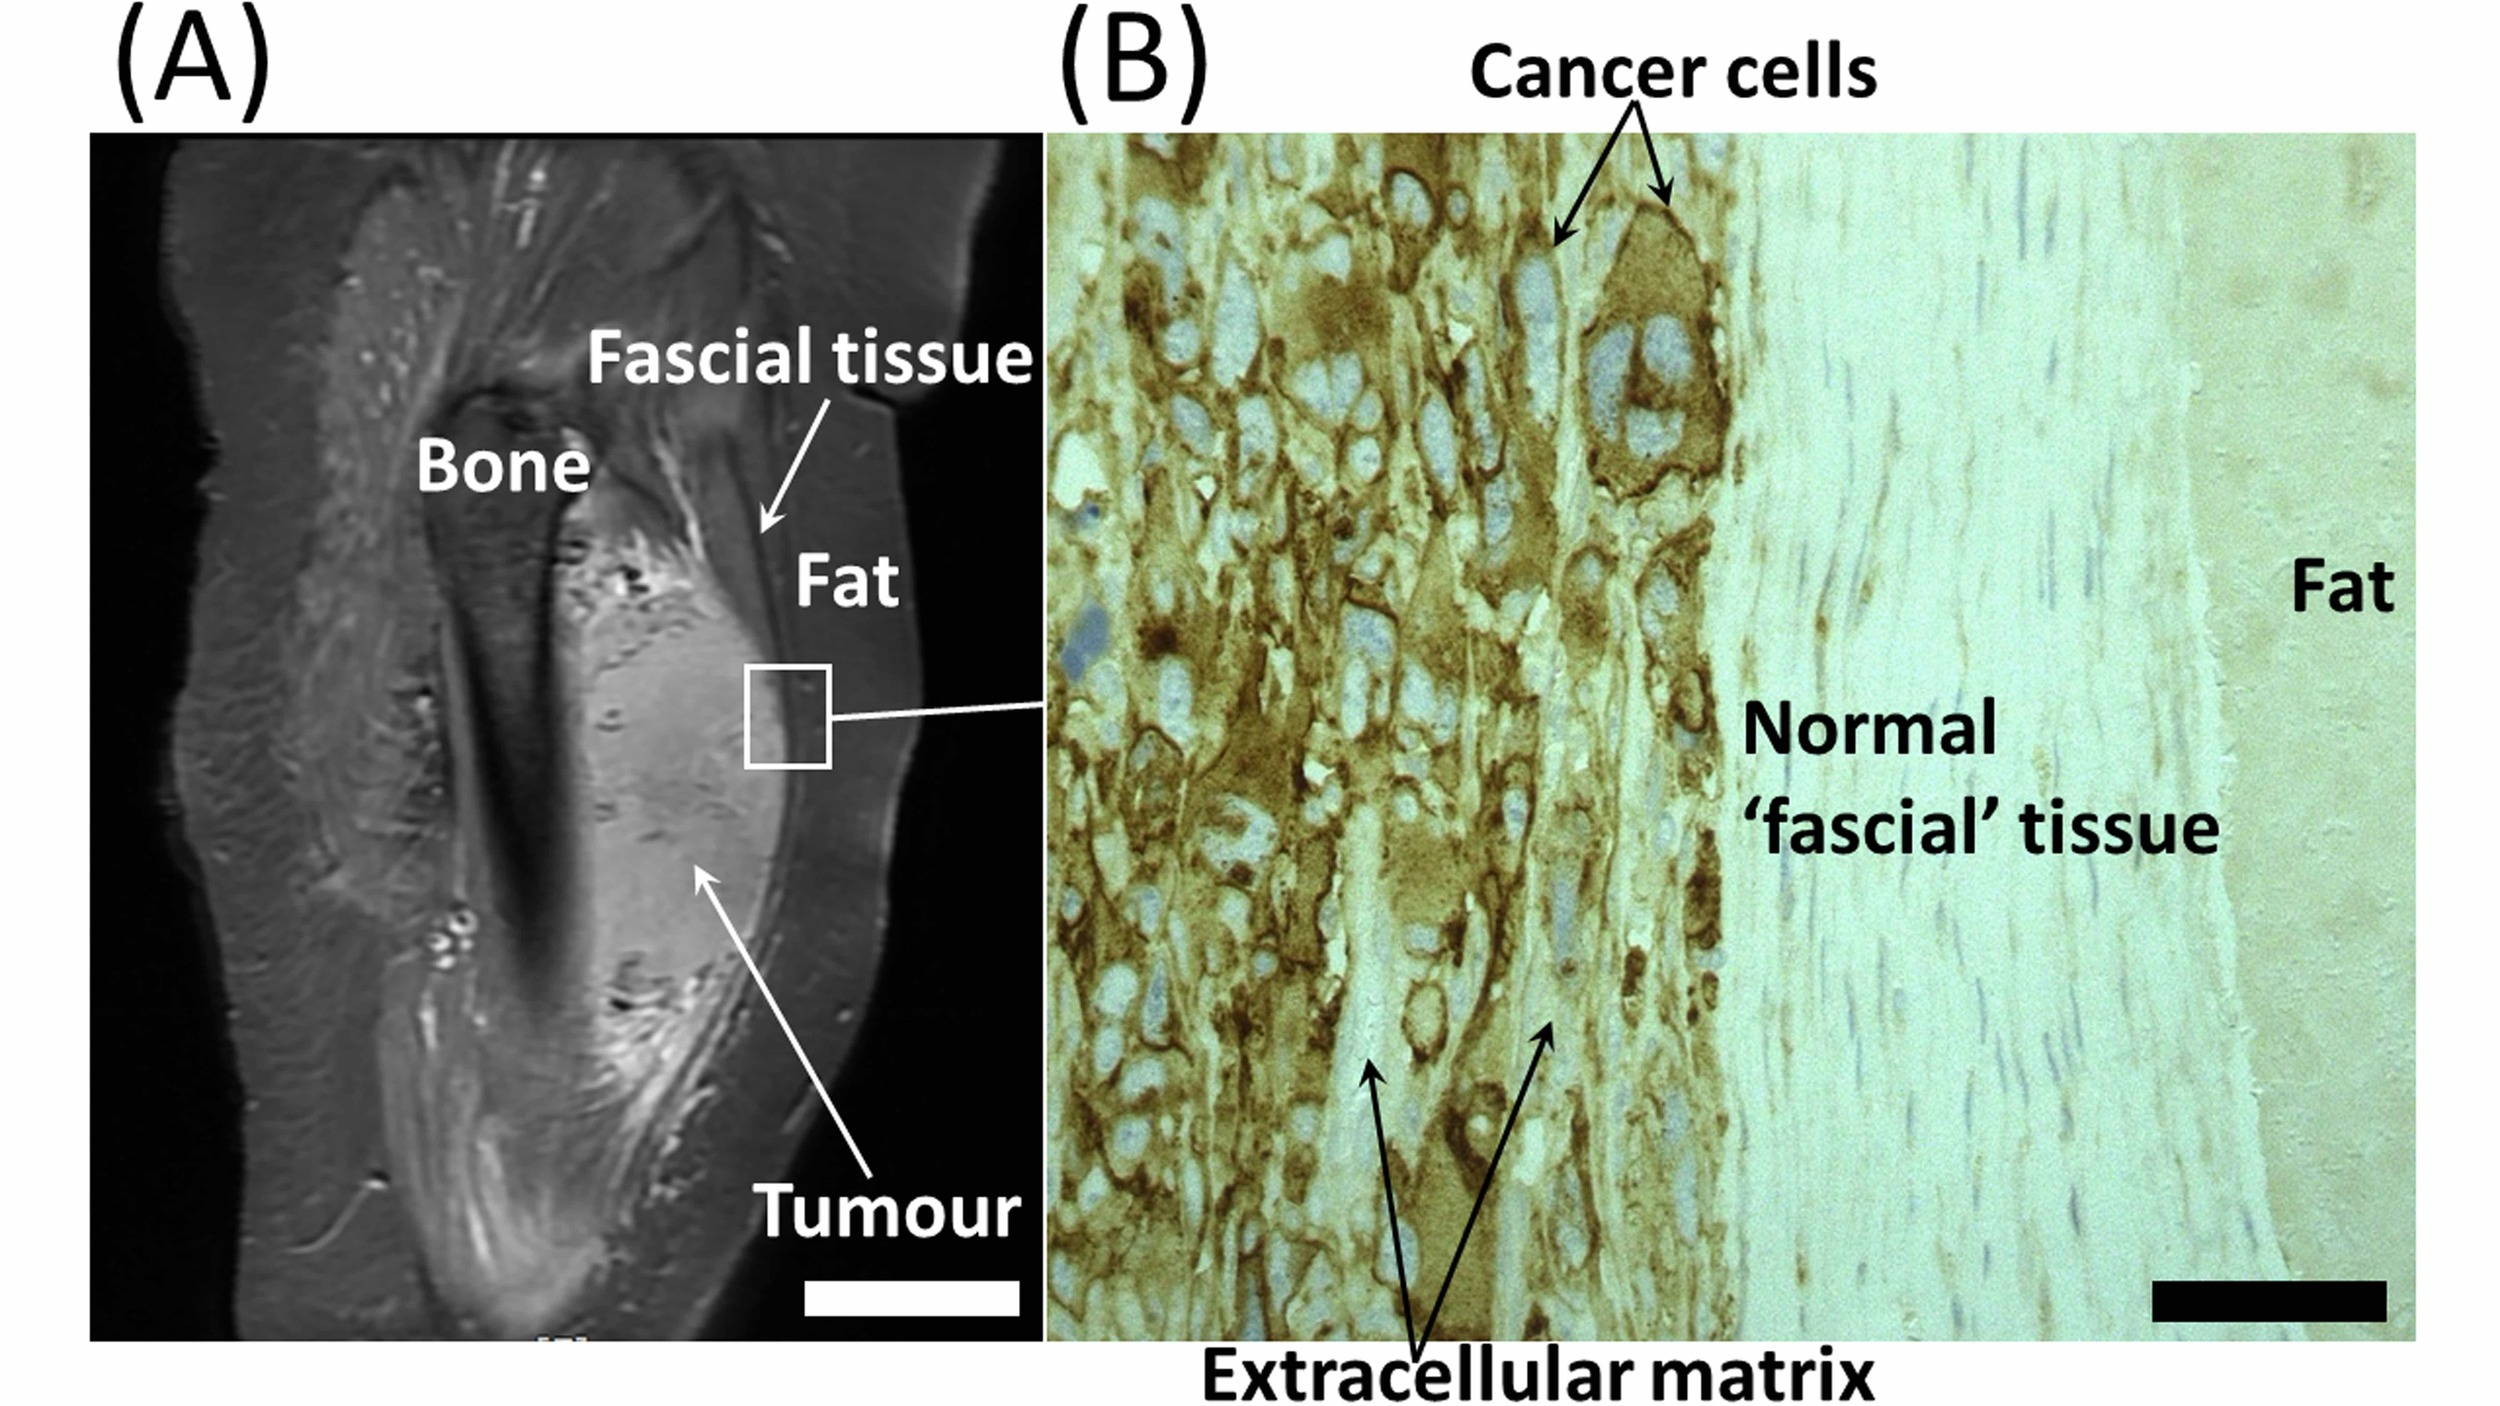 Fig. 4 (A) Magnetic resonance image of a soft tissue tumour in the thigh.The lighter grey appearance of the tumour is due to the high cellular content and different ECM components of the tumour compared to the bone, normal fascial tissue and fat. Scale bar = 20 mm. (B) Histological section of the interface between the tumour and normal tissues. The intense brown staining in the cancer cells is due to high expression of the invasive enzyme membrane type-1 matrix metalloproteinase. This enzyme cleaves the hyaluronan receptor CD44. Scale bar = 50 microns.